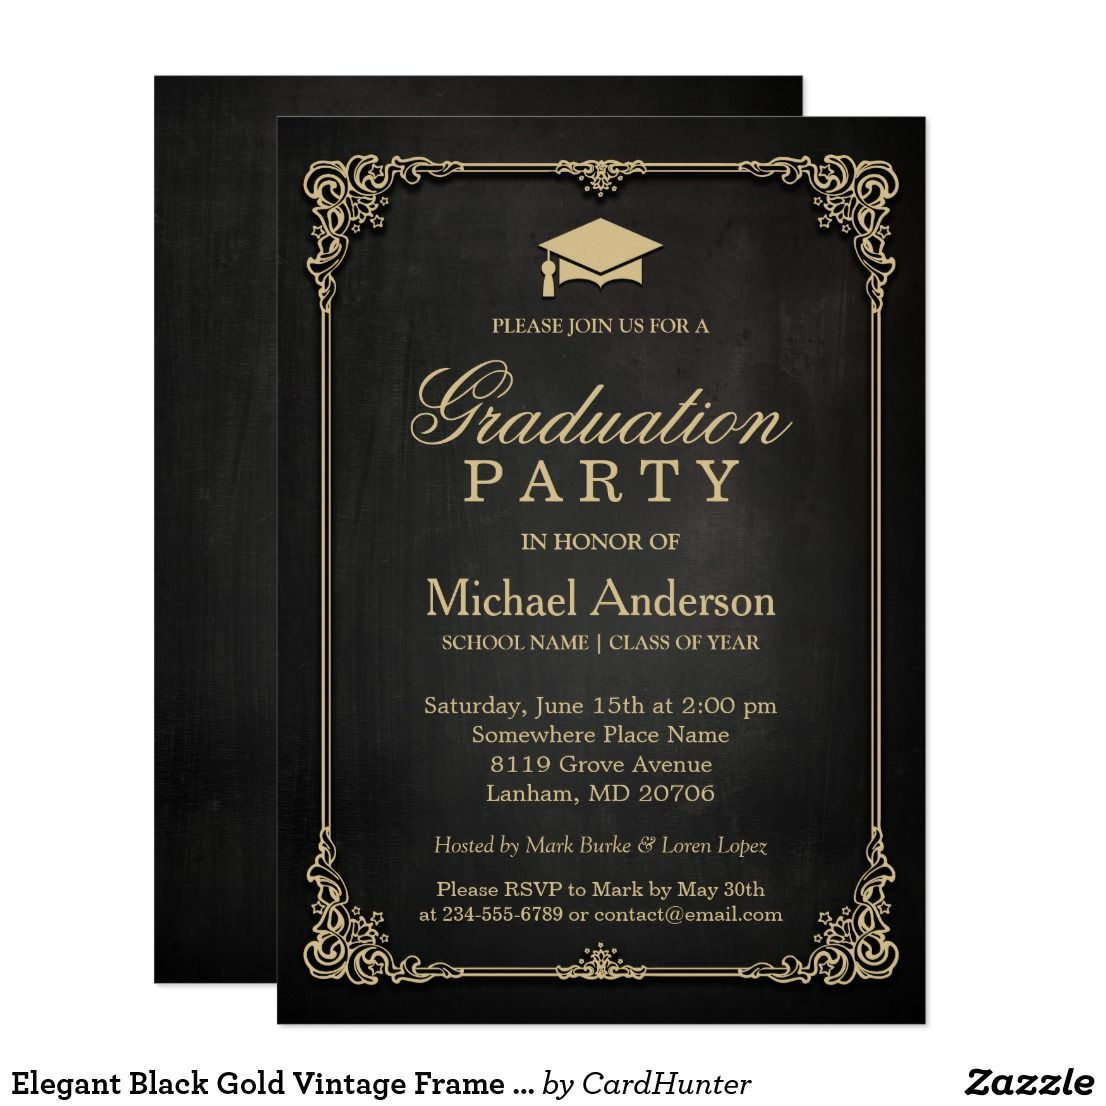 Elegant Black Gold Vintage Frame Graduation Party Invitation ...